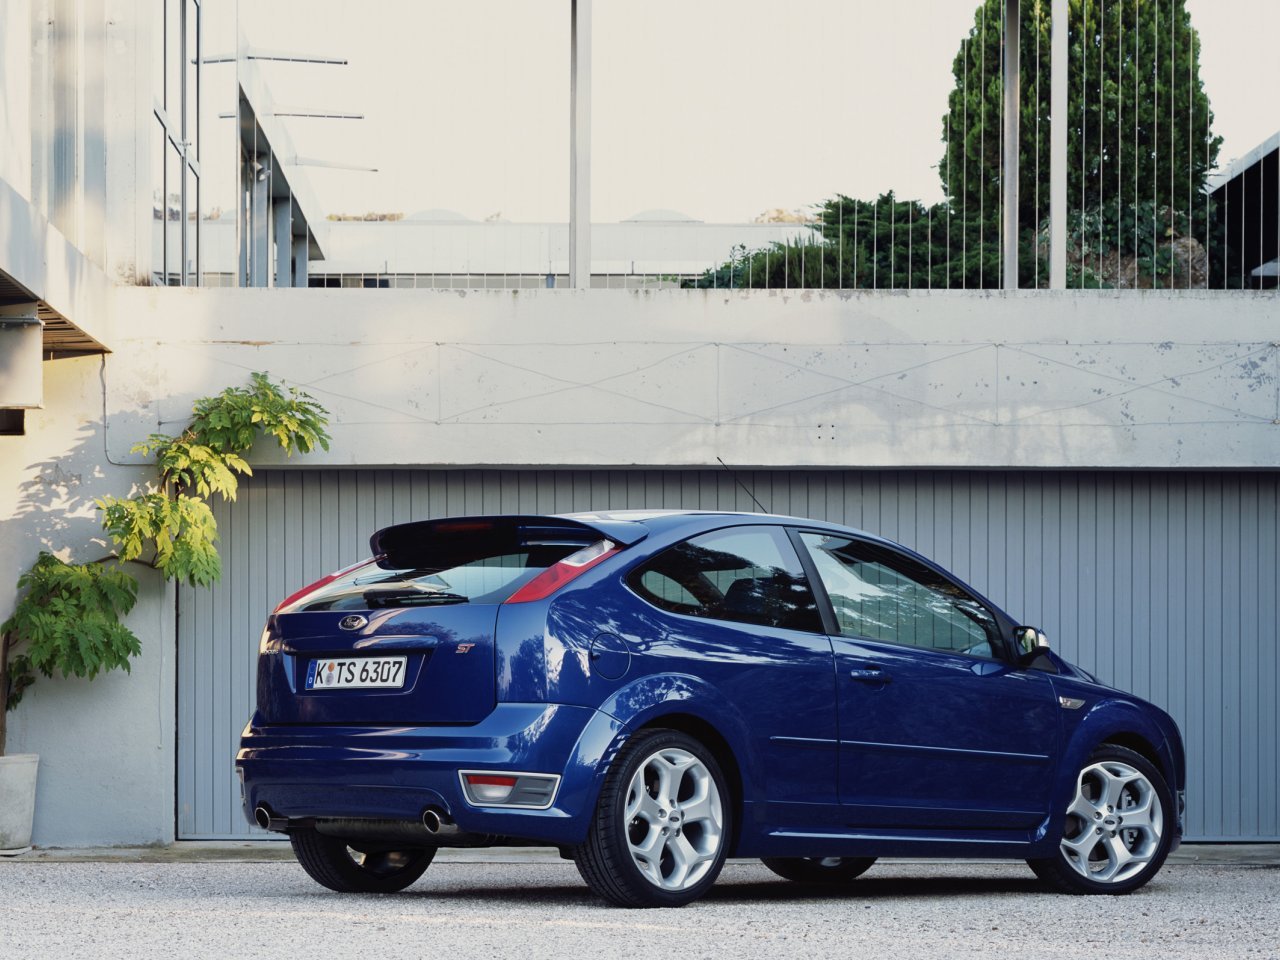 Photoshop of the 08 Focus-ford-focus-st-3.jpg